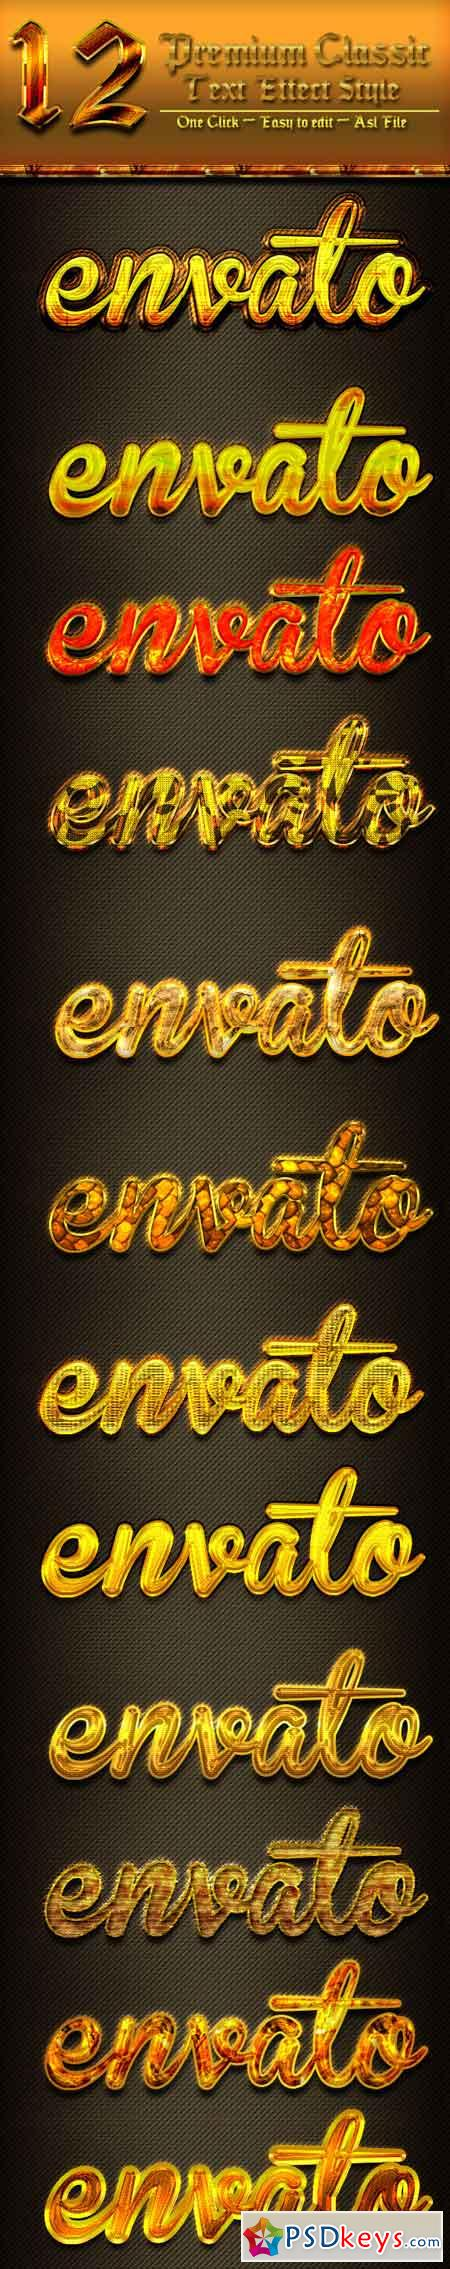 12 Photoshop GOLD Text Effect Styles Vol 26 20167018